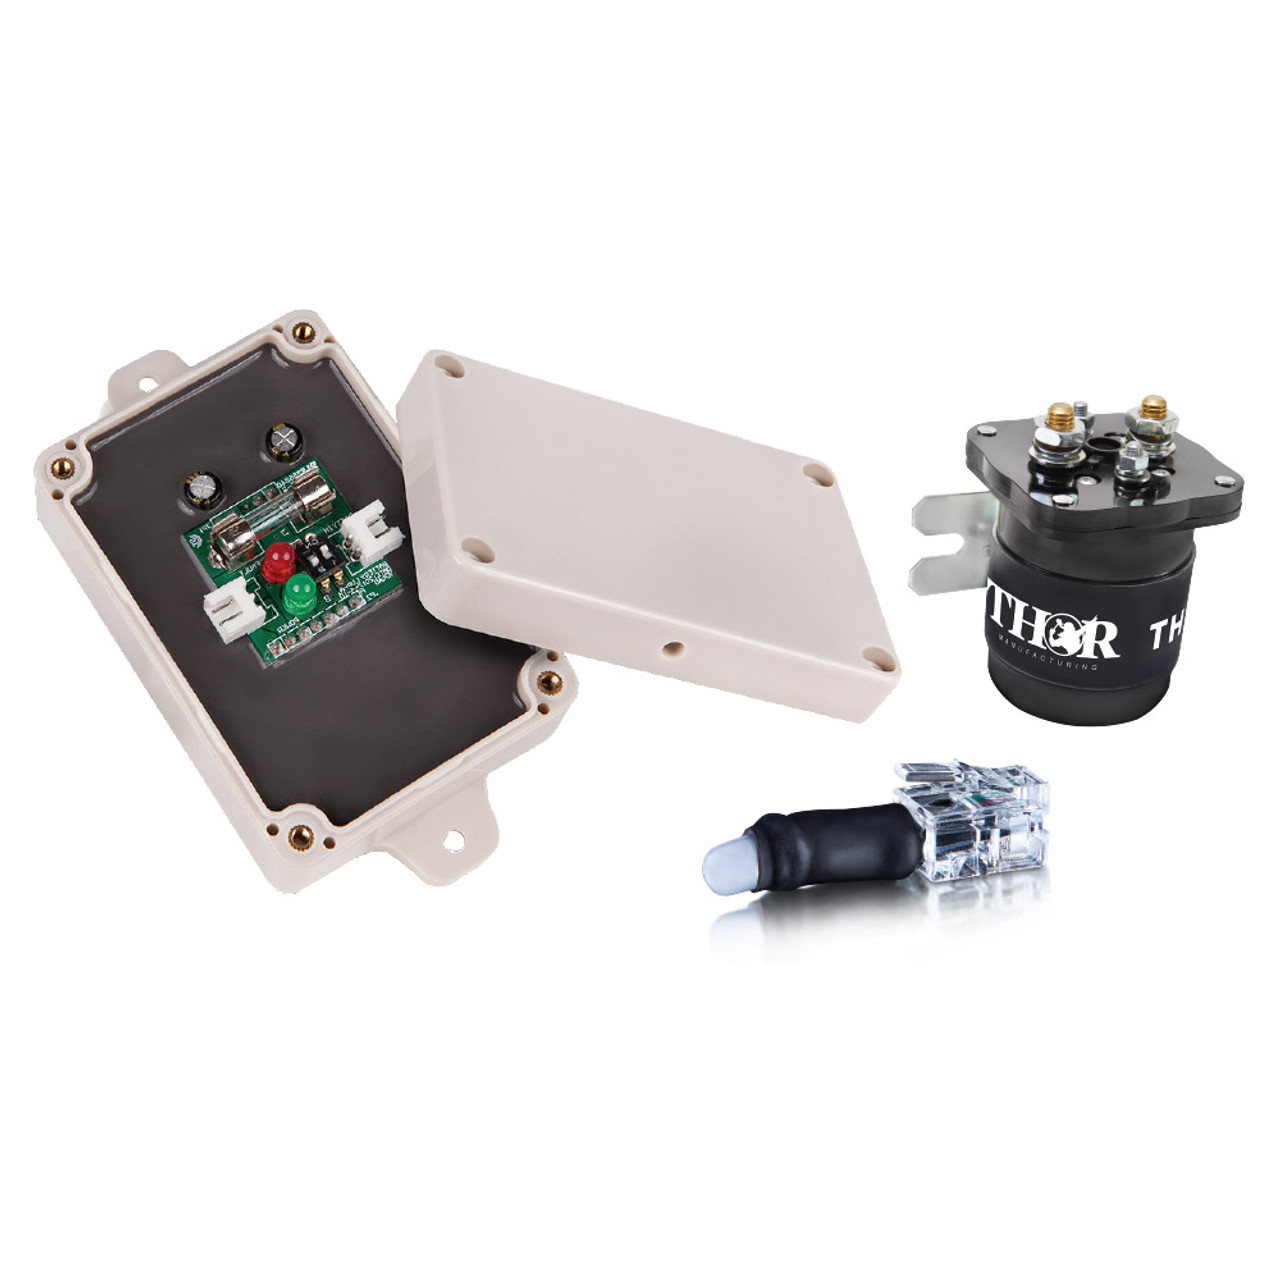 THOR 200Amp Isolator with Low Voltage Disconnect and Inverter By Pass Switch